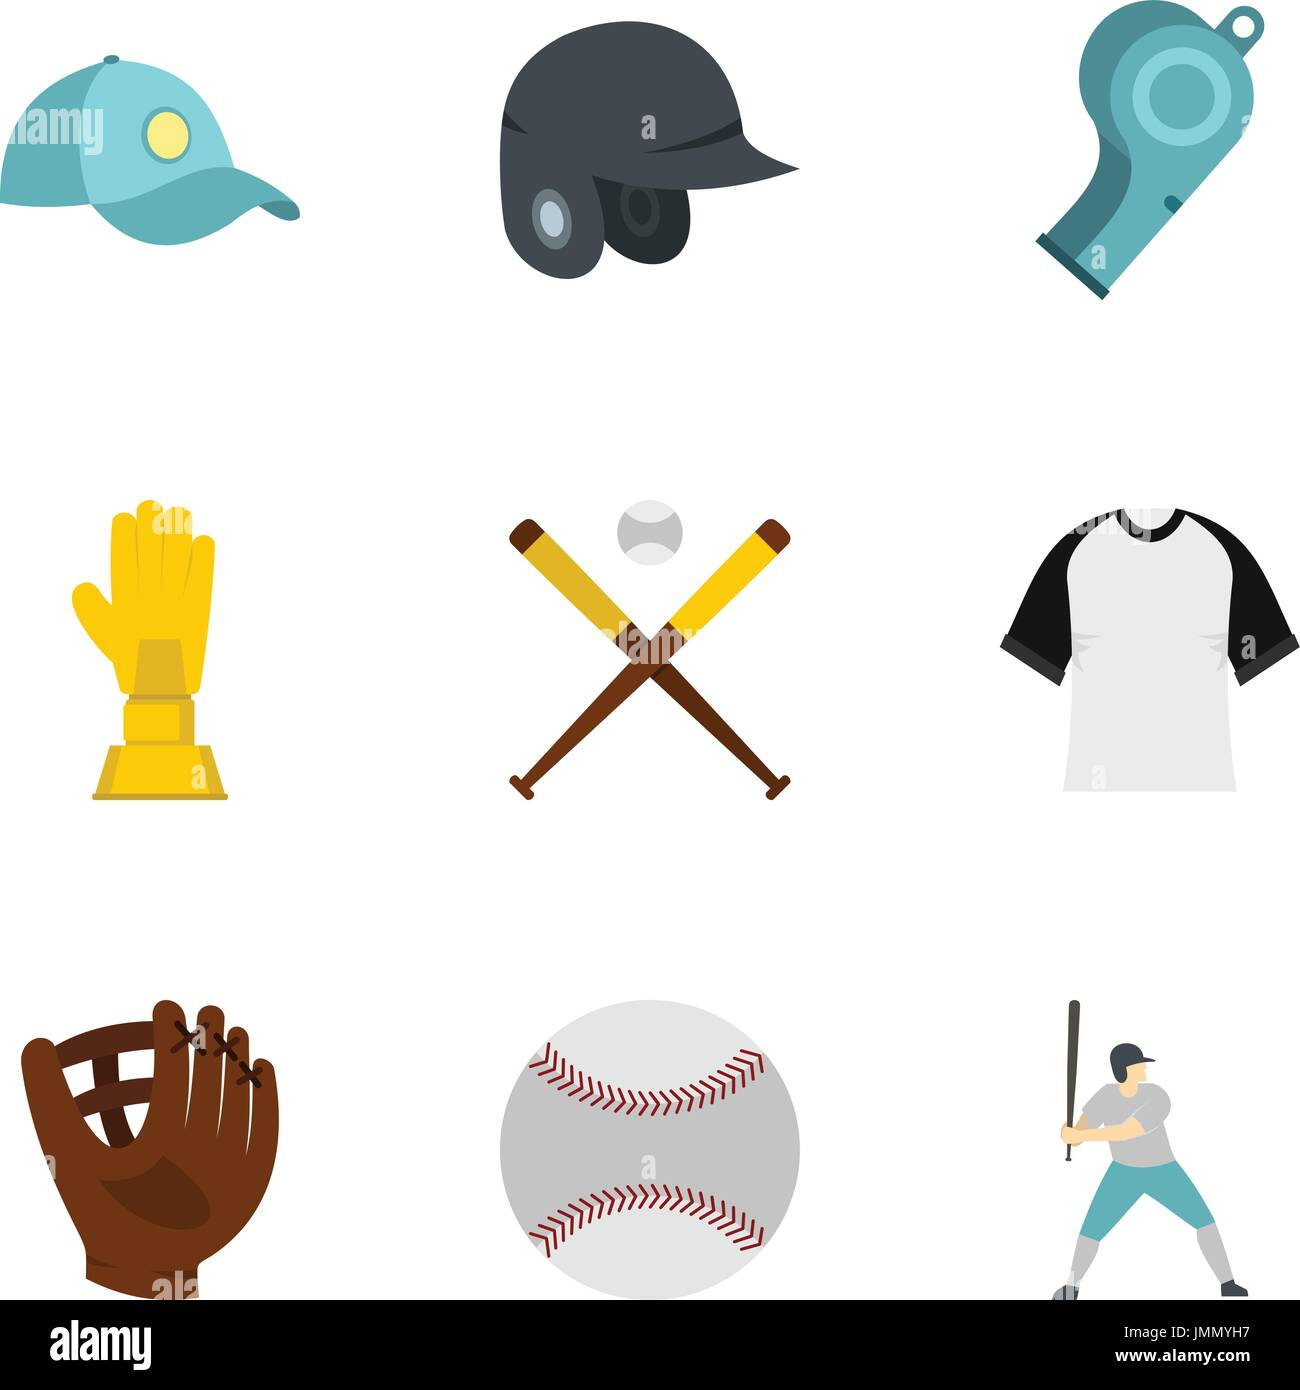 Baseball Goods Stock Photos   Baseball Goods Stock Images - Alamy a94b1f8ffd93